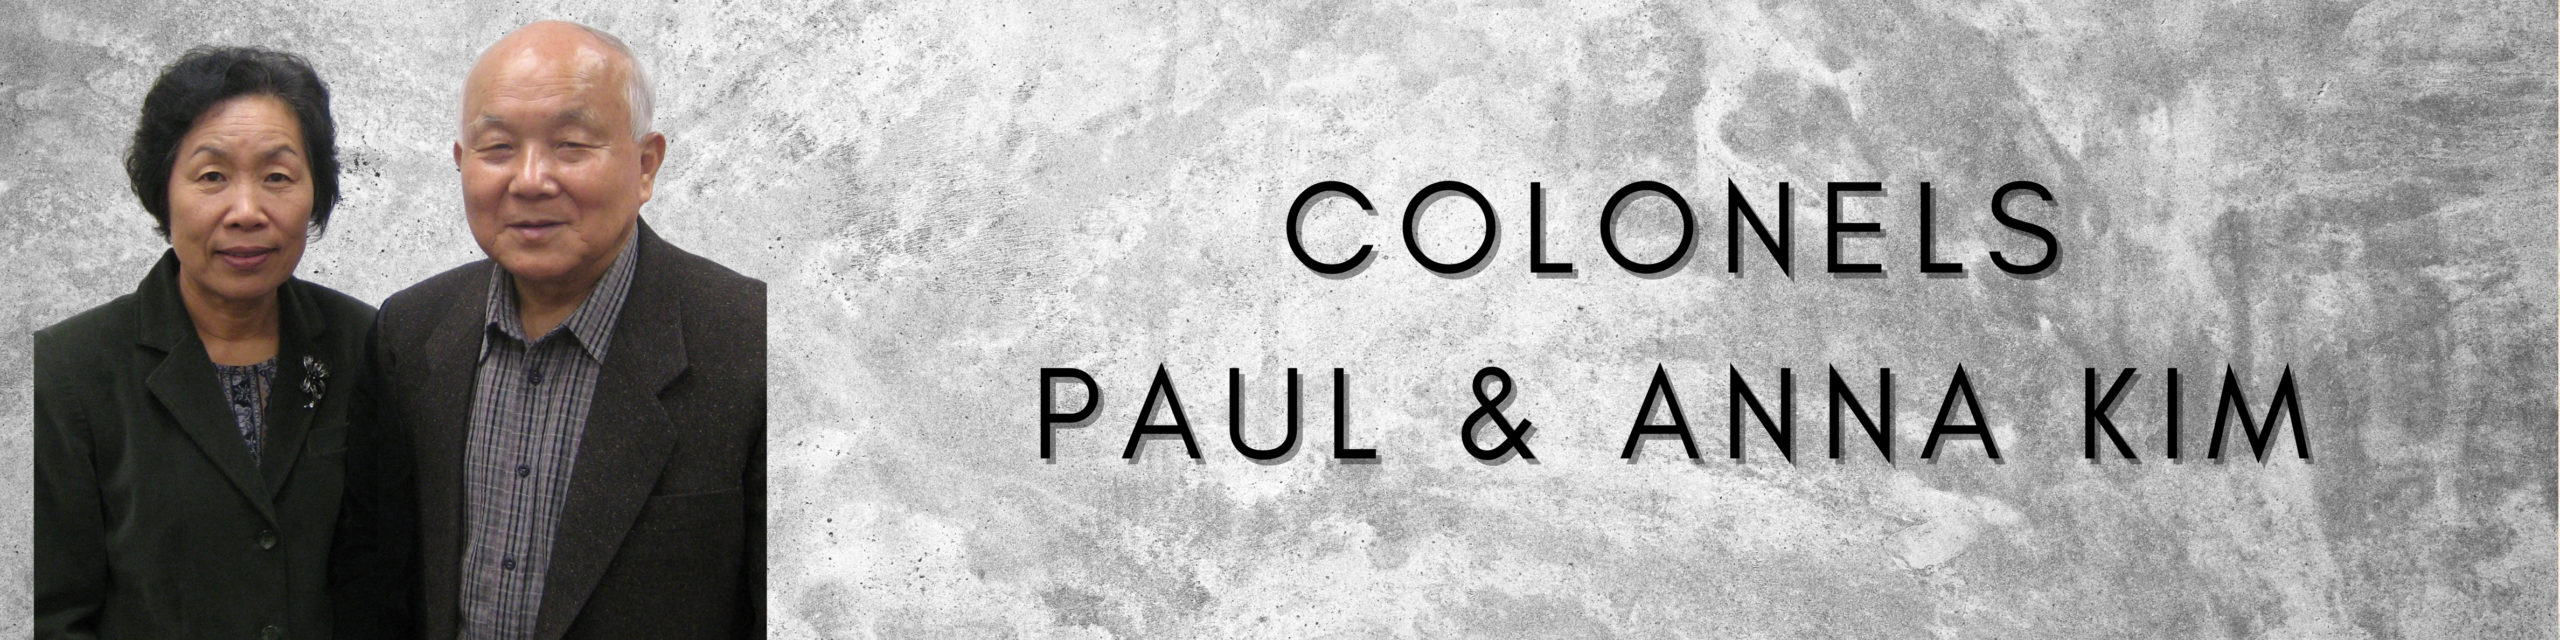 Page title graphic showing Colonels Paul and Anna Kim smiling and wearing street clothes.